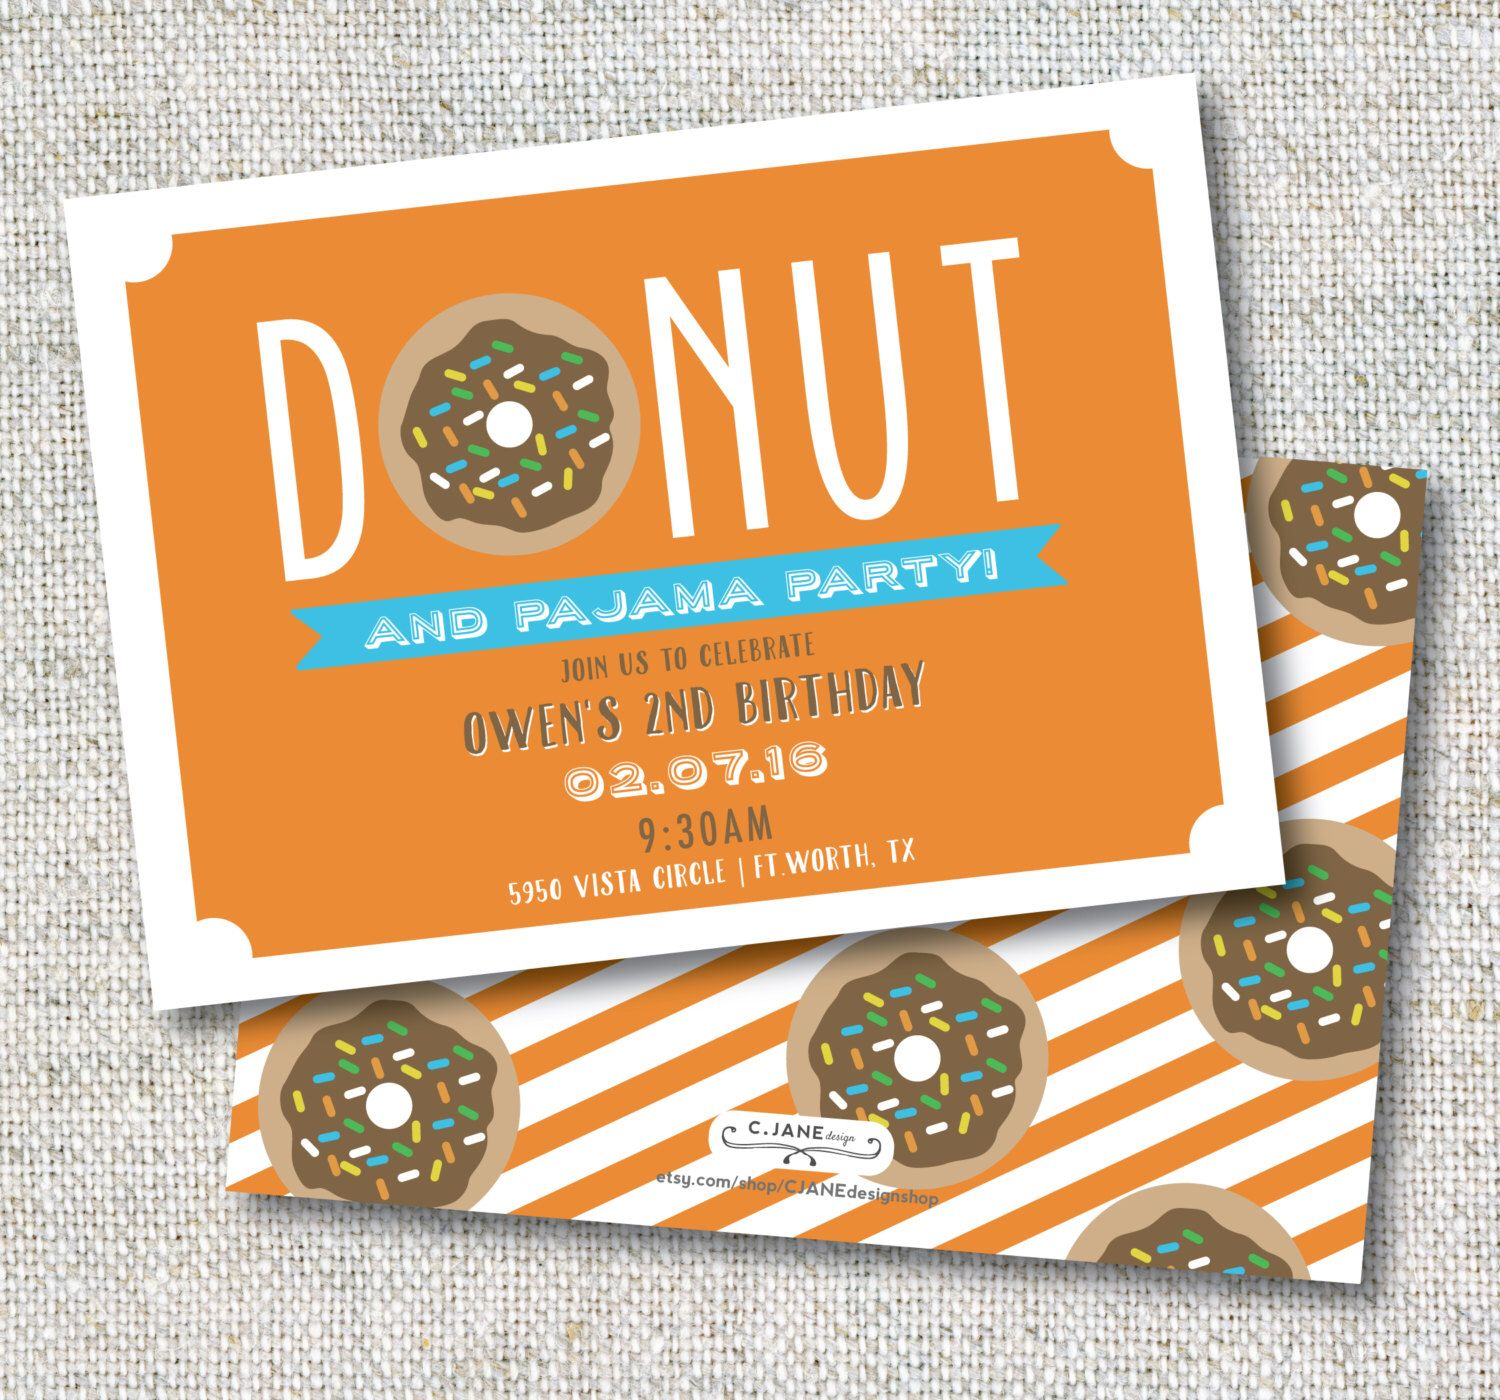 Donuts and Pajama Party: Boy Birthday, Donut Party, Pajama Party, Invitation, Printable, Customizable by CJANEdesignshop on Etsy https://www.etsy.com/listing/263154541/donuts-and-pajama-party-boy-birthday                                                                                                                                                                                 More